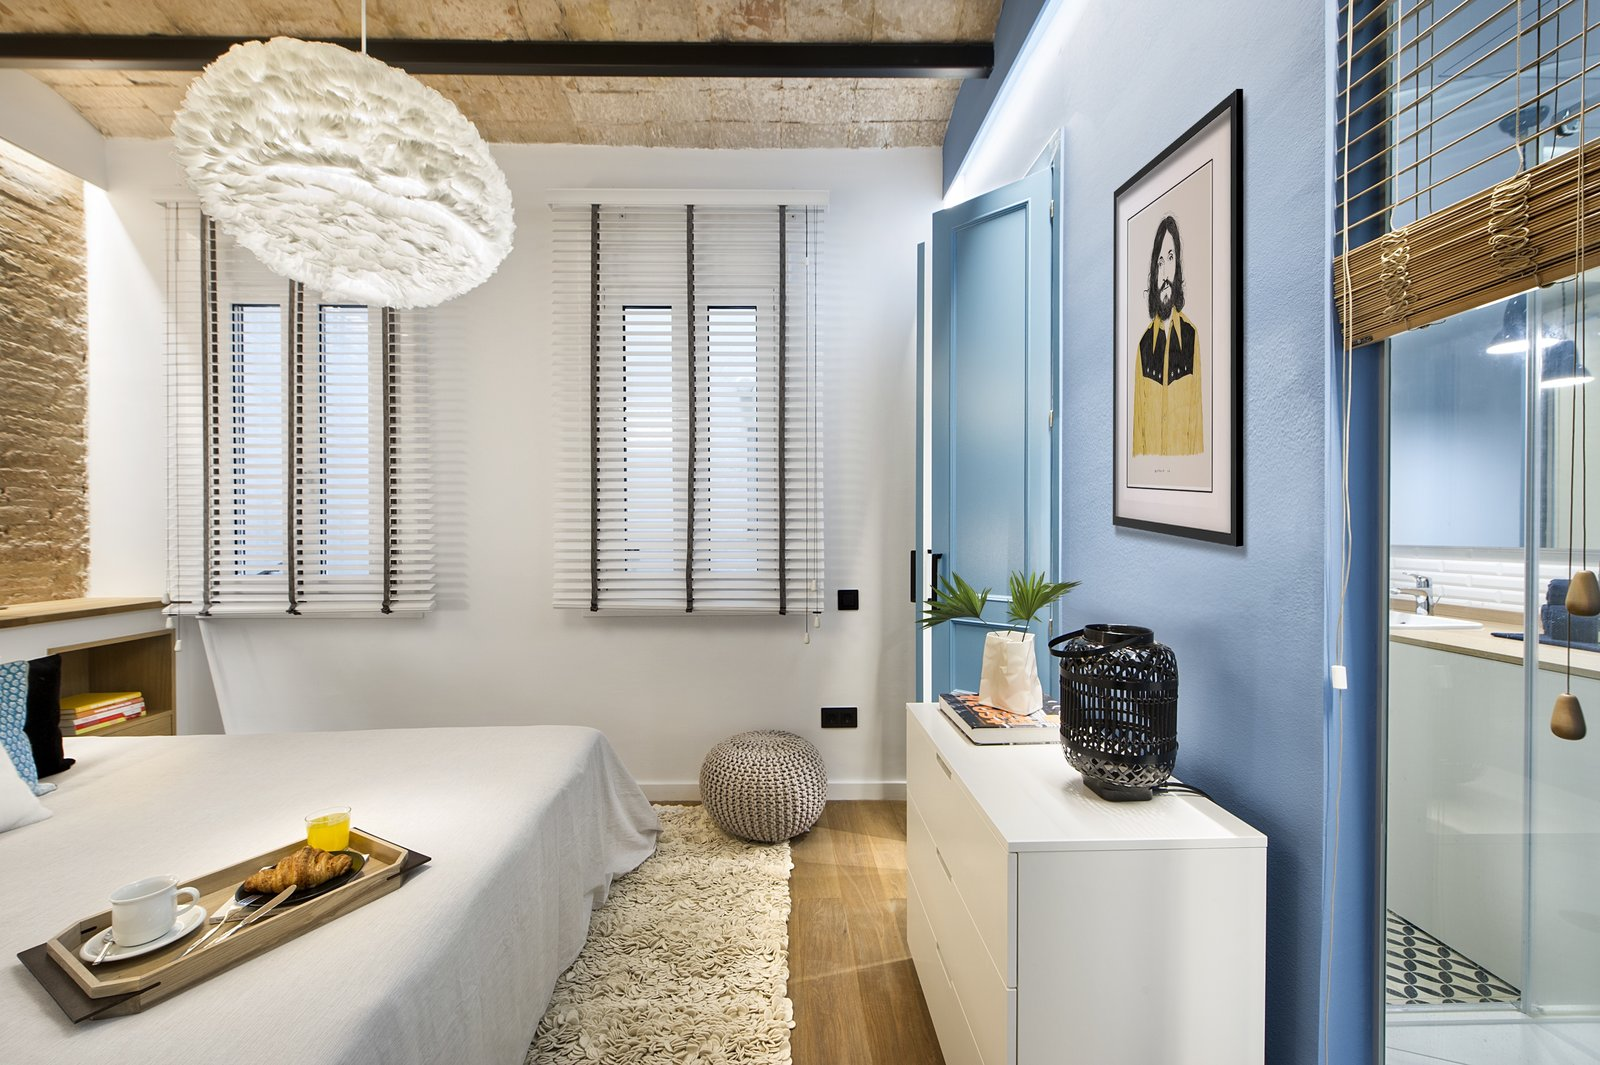 Bedroom, Bed, Shelves, Dresser, Pendant Lighting, and Light Hardwood Floor  Photo 11 of 11 in A Smart Layout Maximizes Space in This Compact Urban Beach Apartment in Barcelona